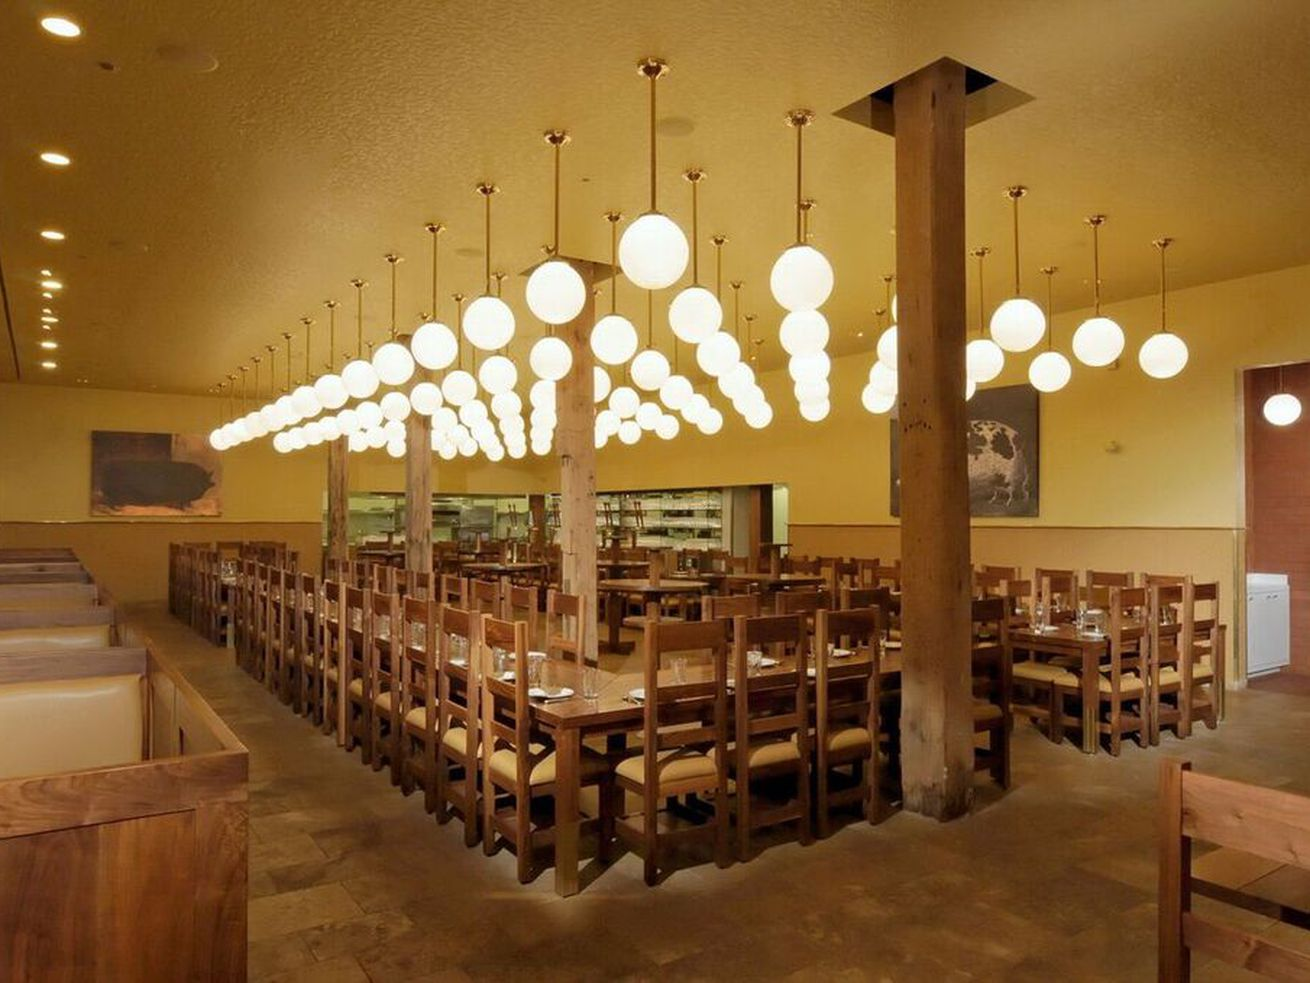 The Publican's dining room